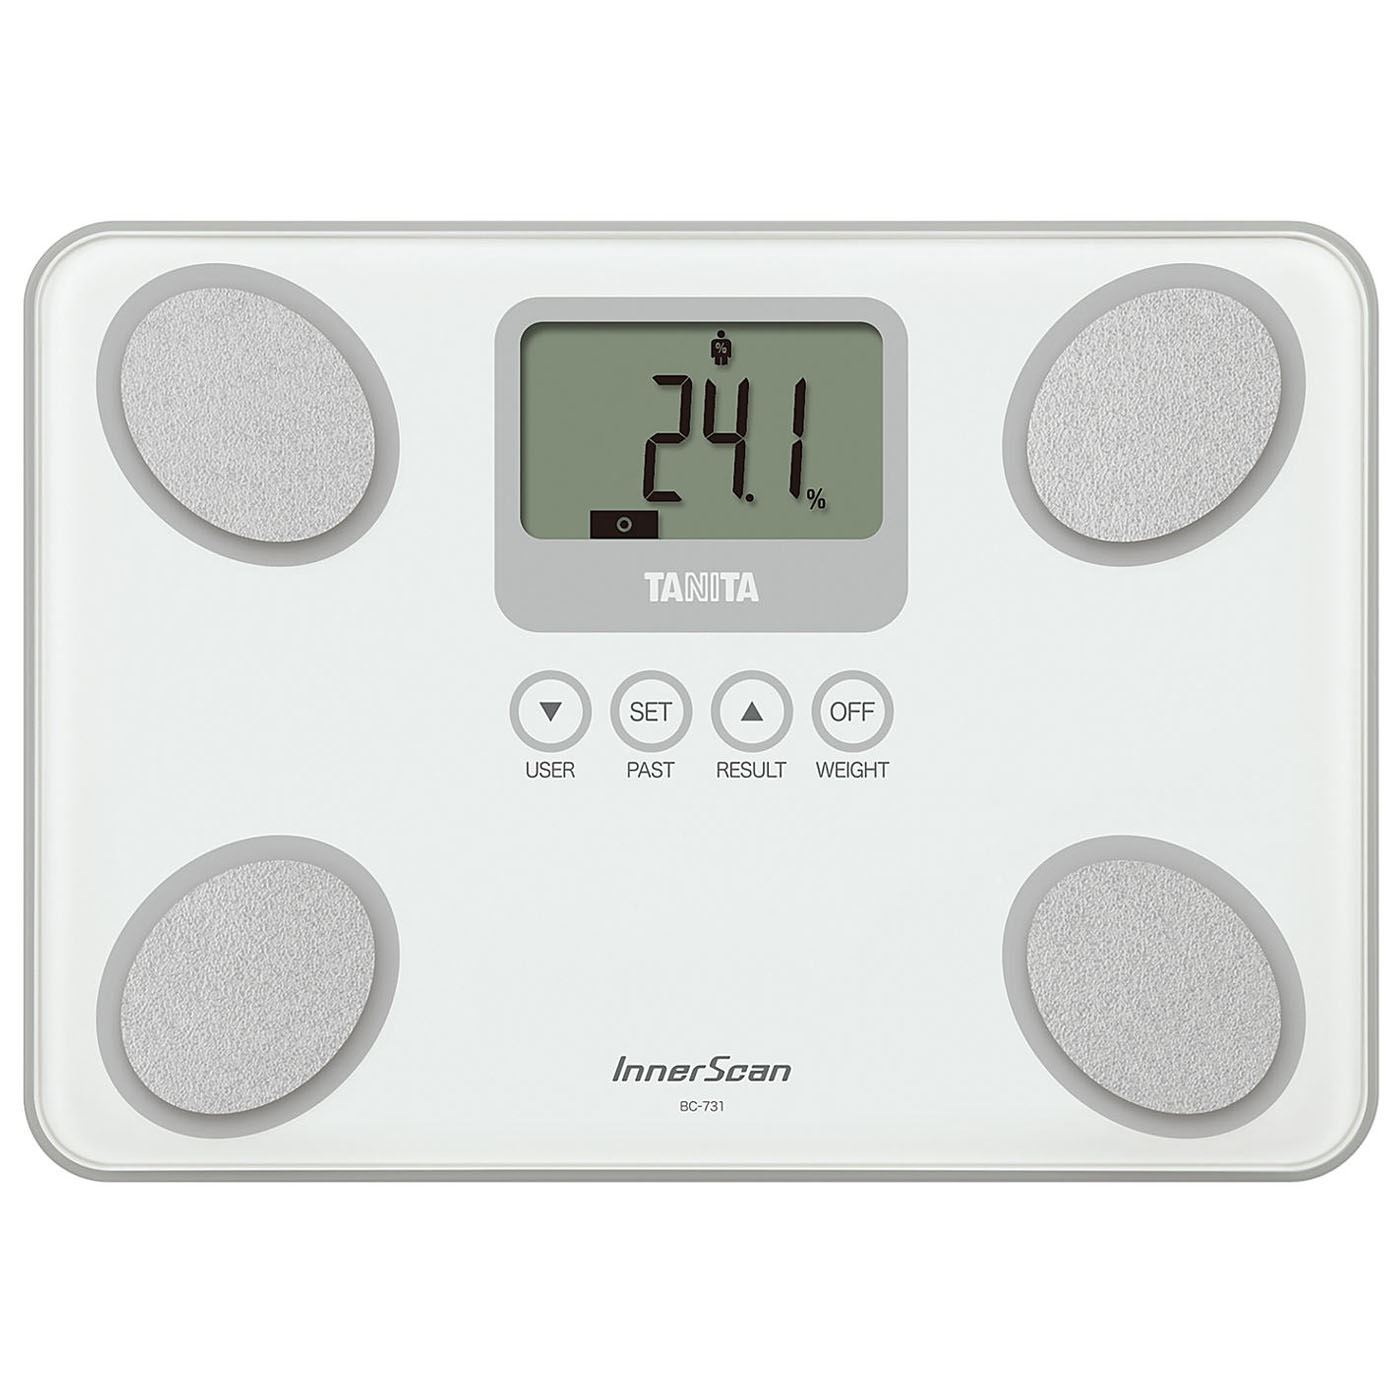 Tanita Digital Bathroom Scales: Tanita BC731 White InnerScan Body Composition Monitor